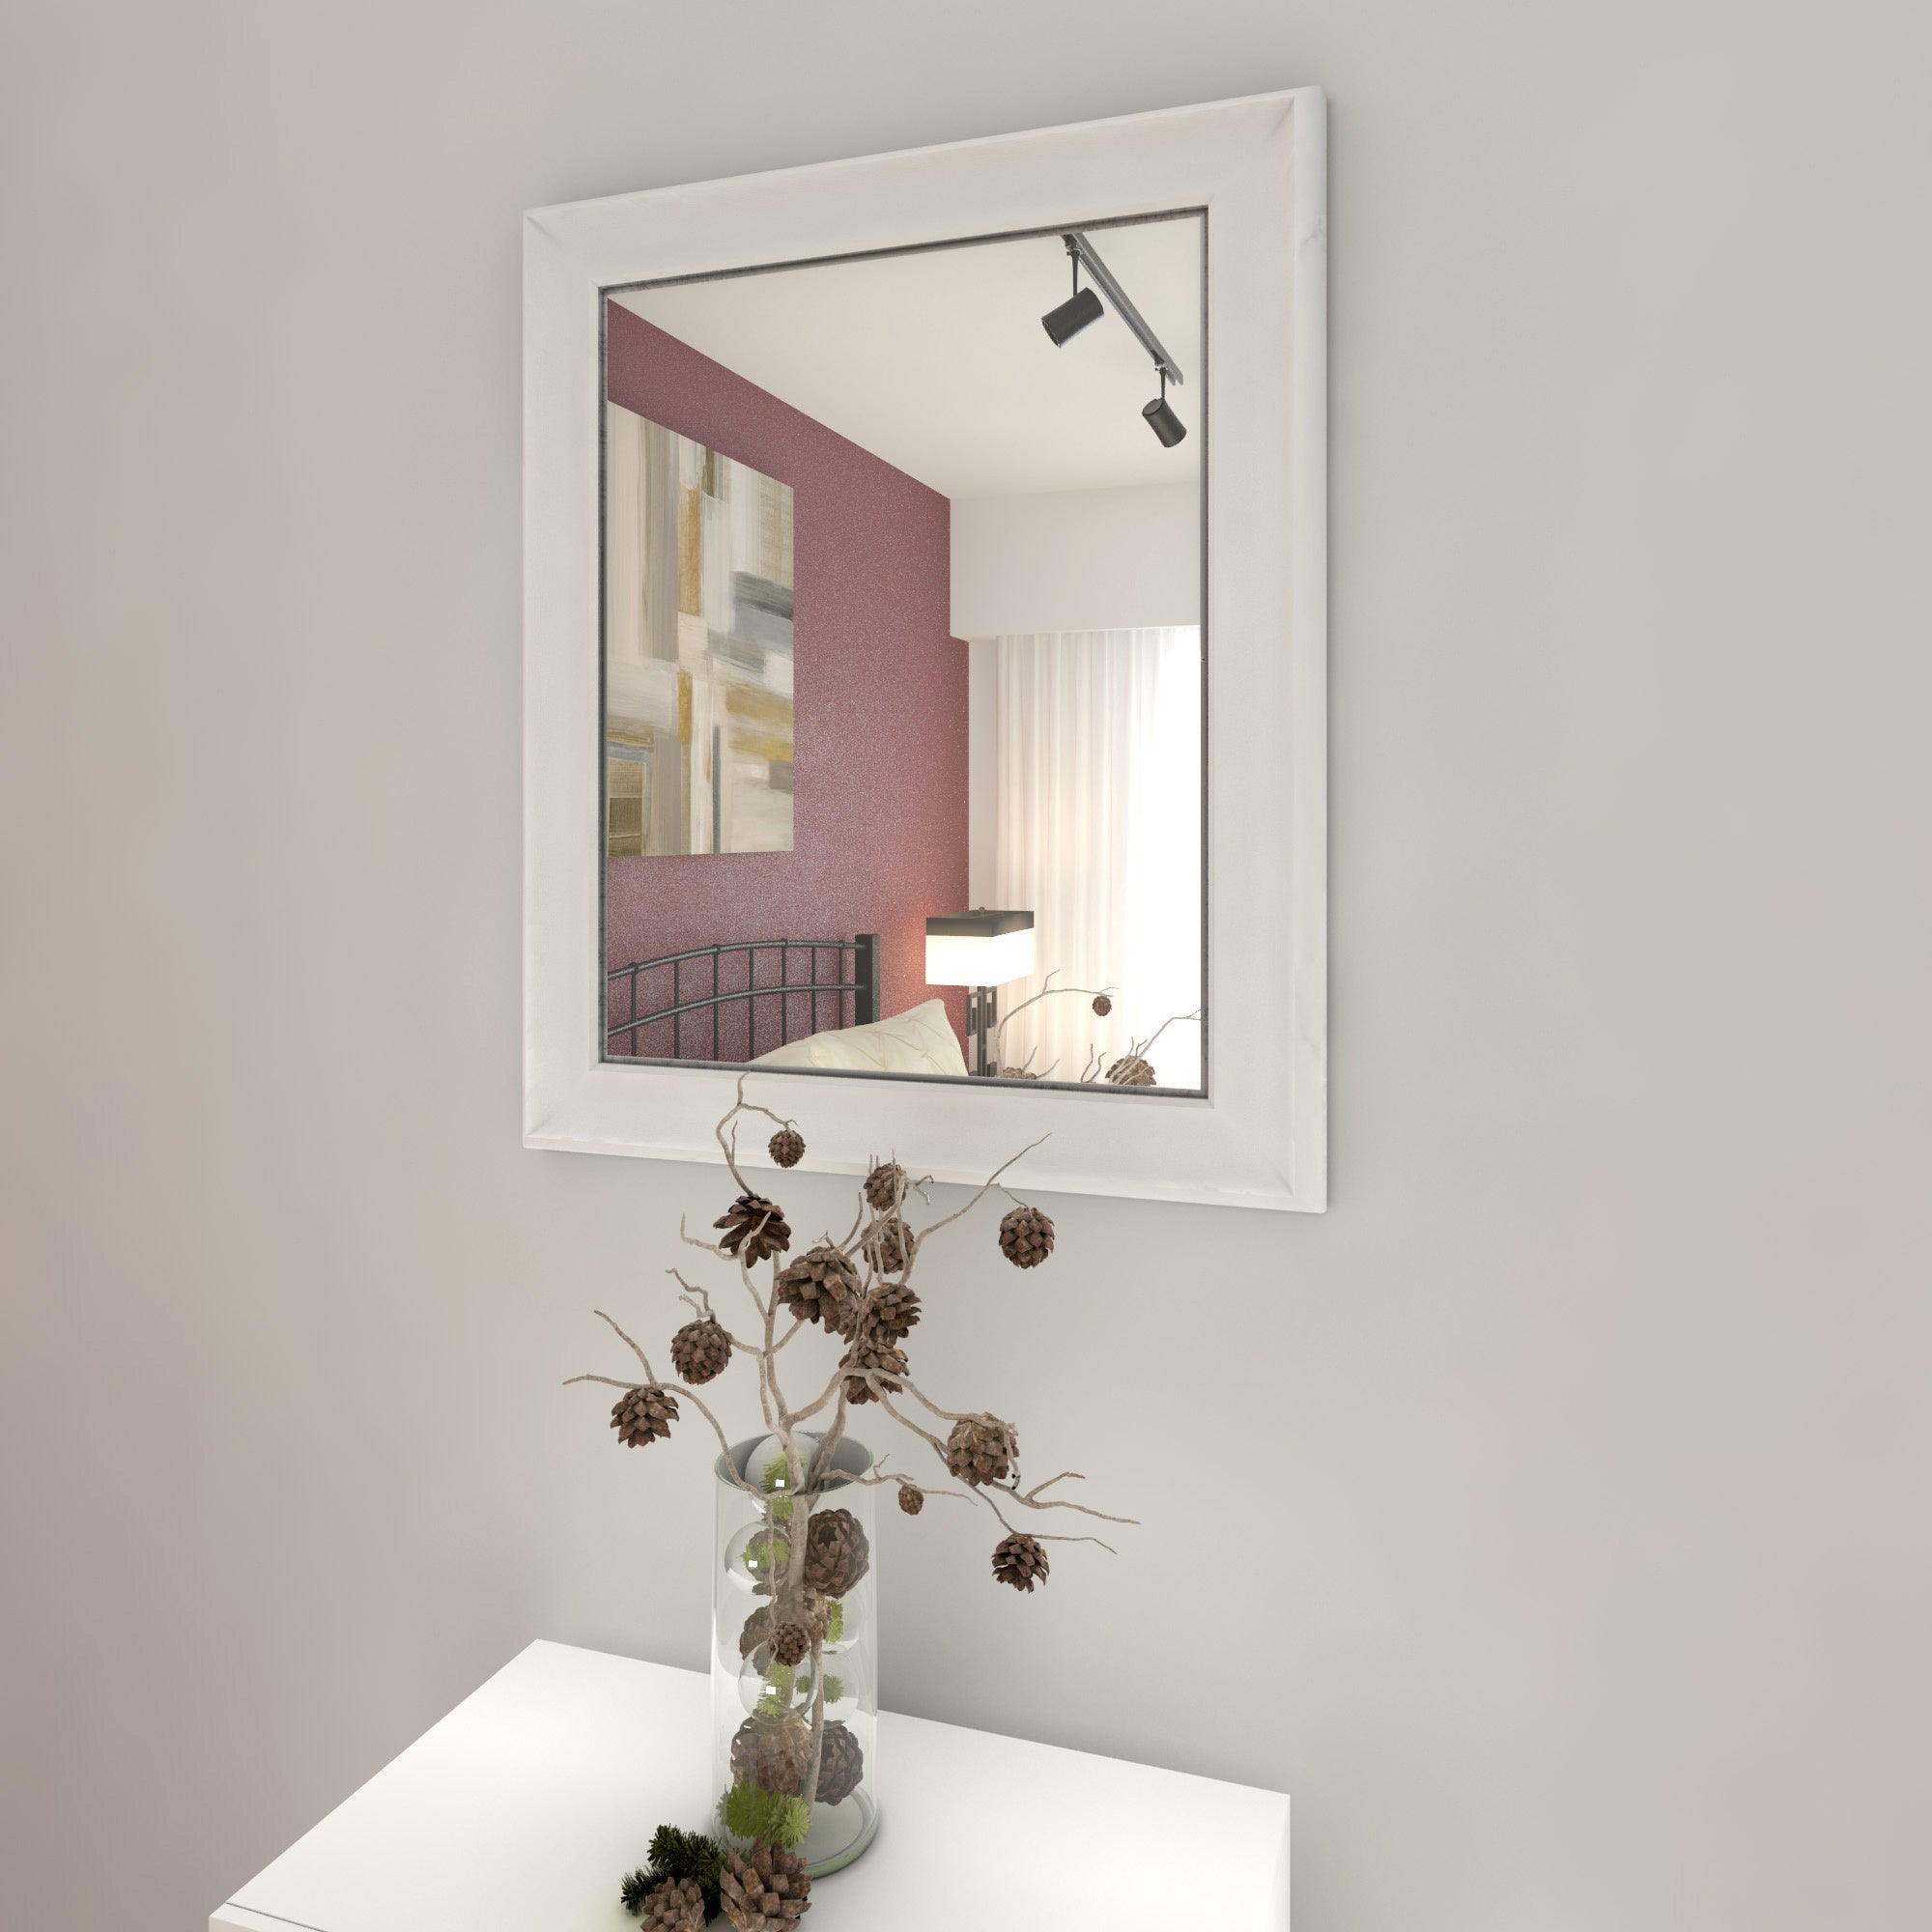 Homeland enderly white 36 x 30 inch wall mirror free shipping on homeland enderly white 36 x 30 inch wall mirror amipublicfo Choice Image